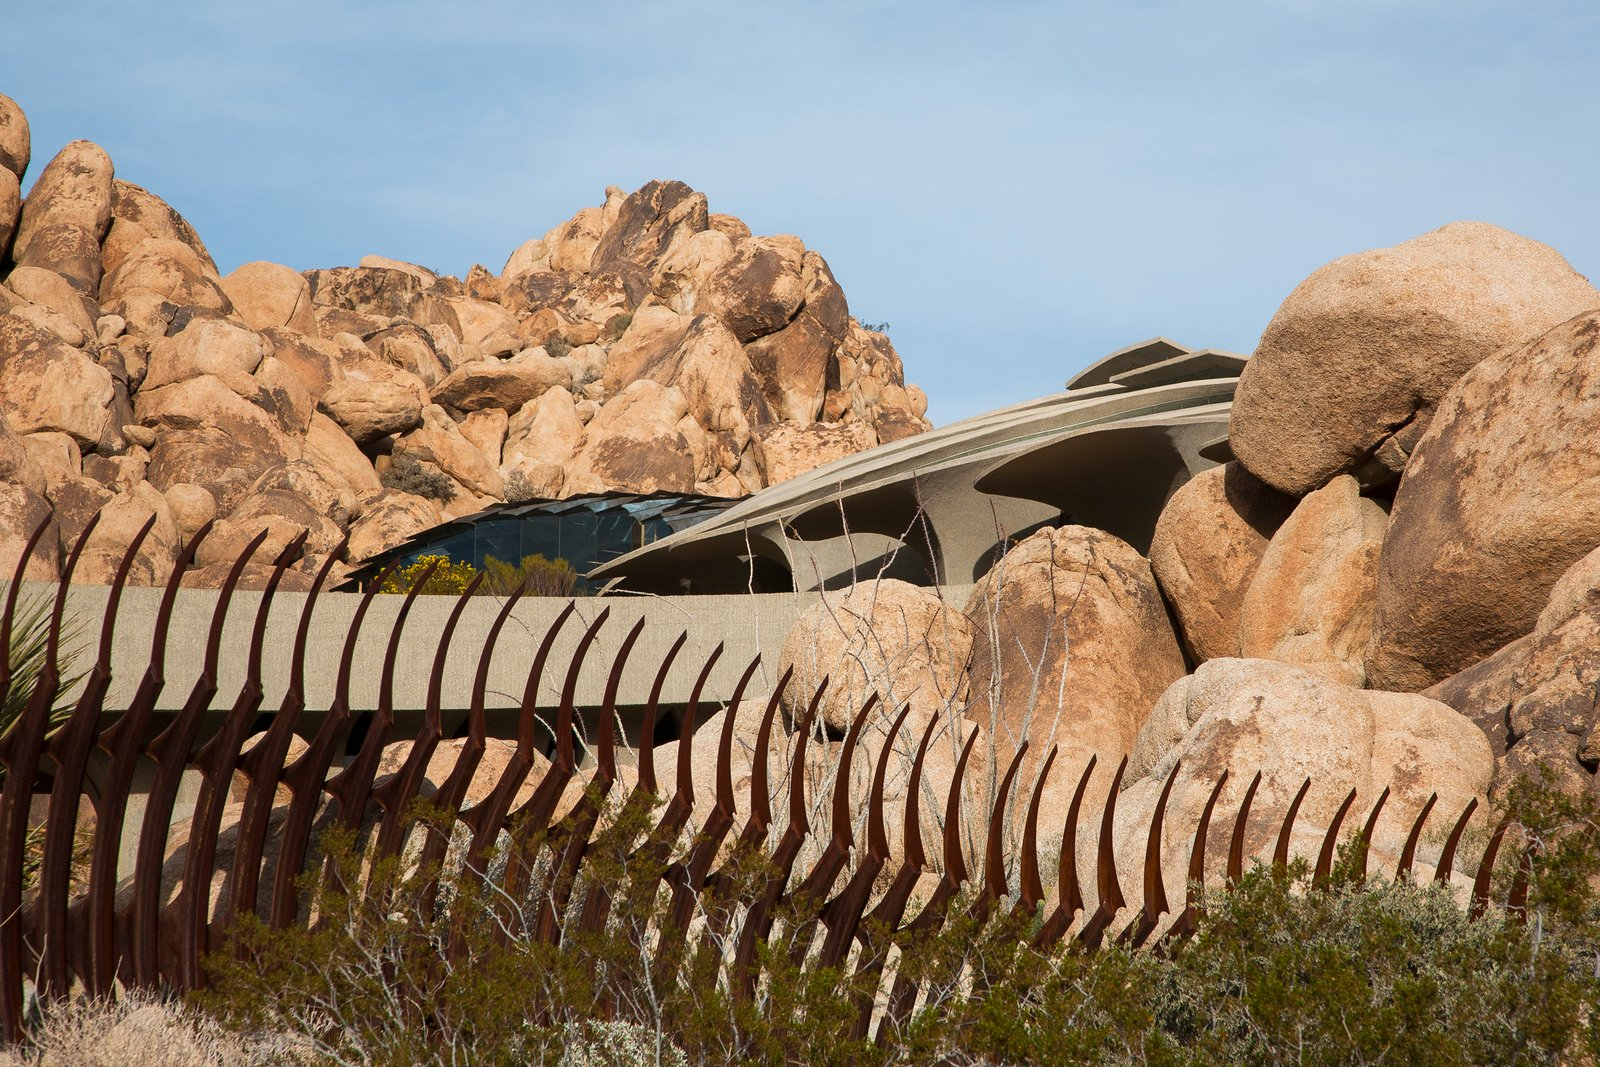 High Desert House in Joshua Tree Is an Otherworldly Architectural Icon